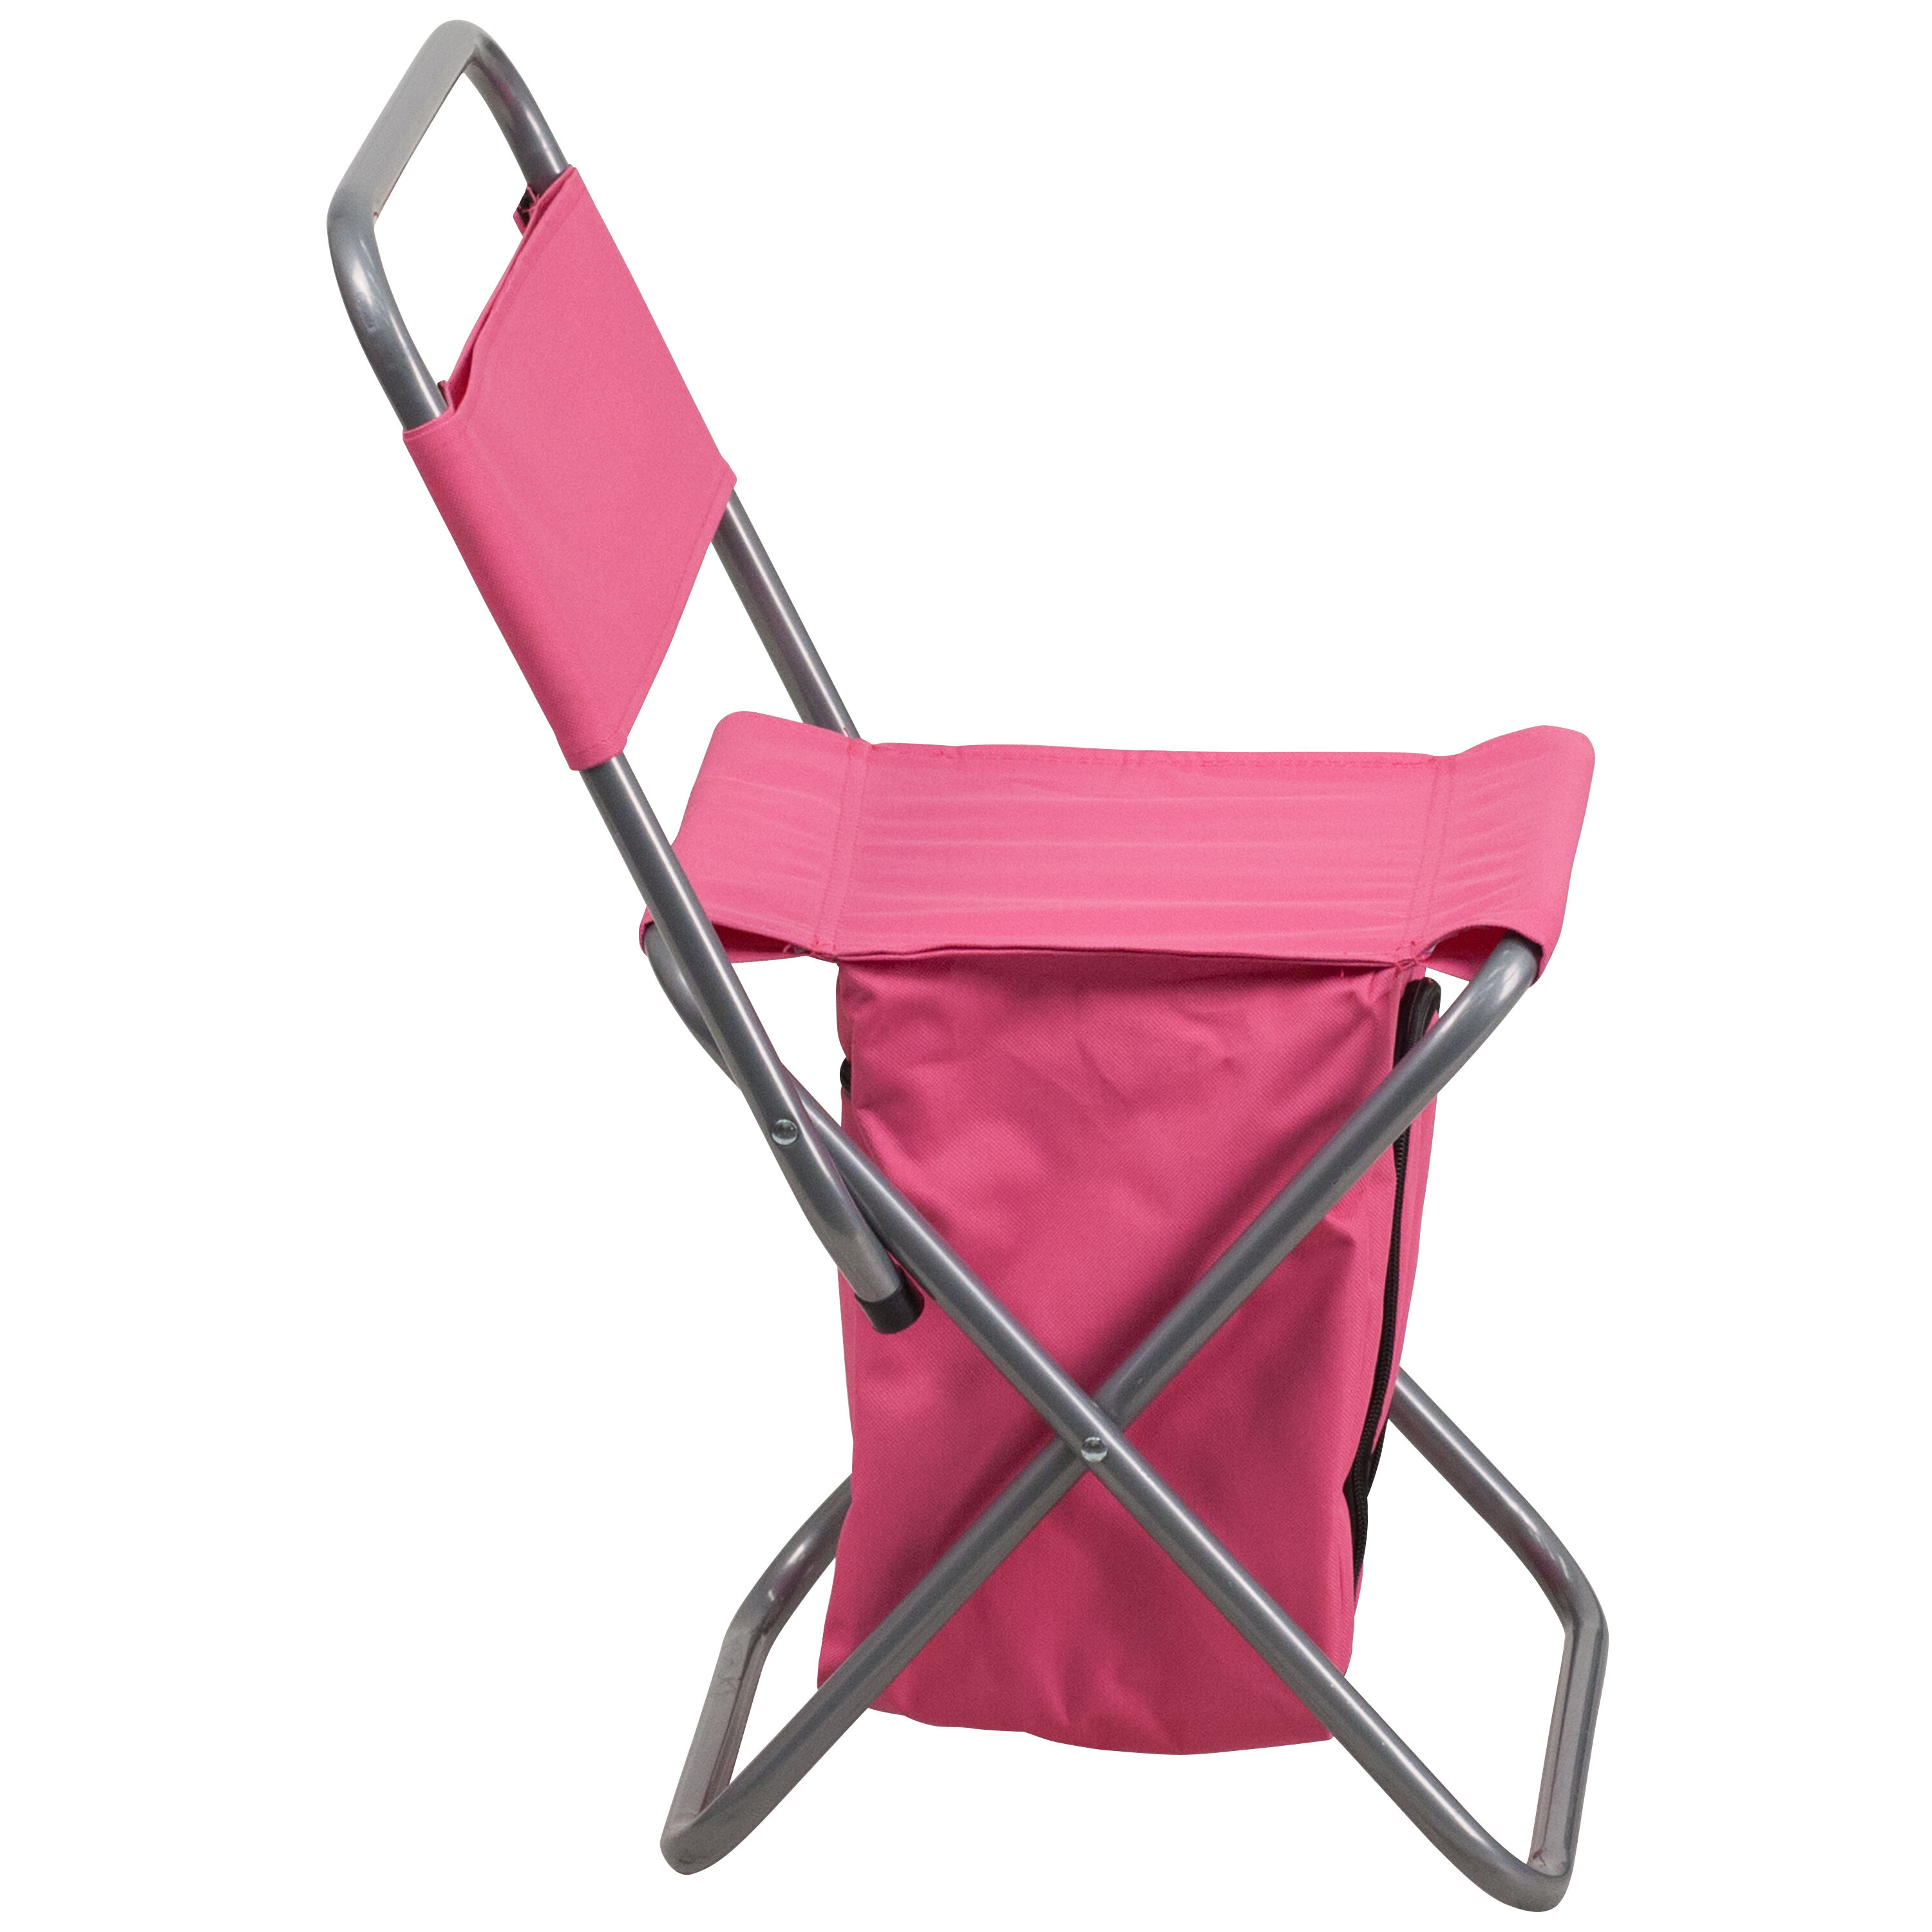 Our Folding Camping Chair With Insulated Storage In Pink Is On Sale Now.